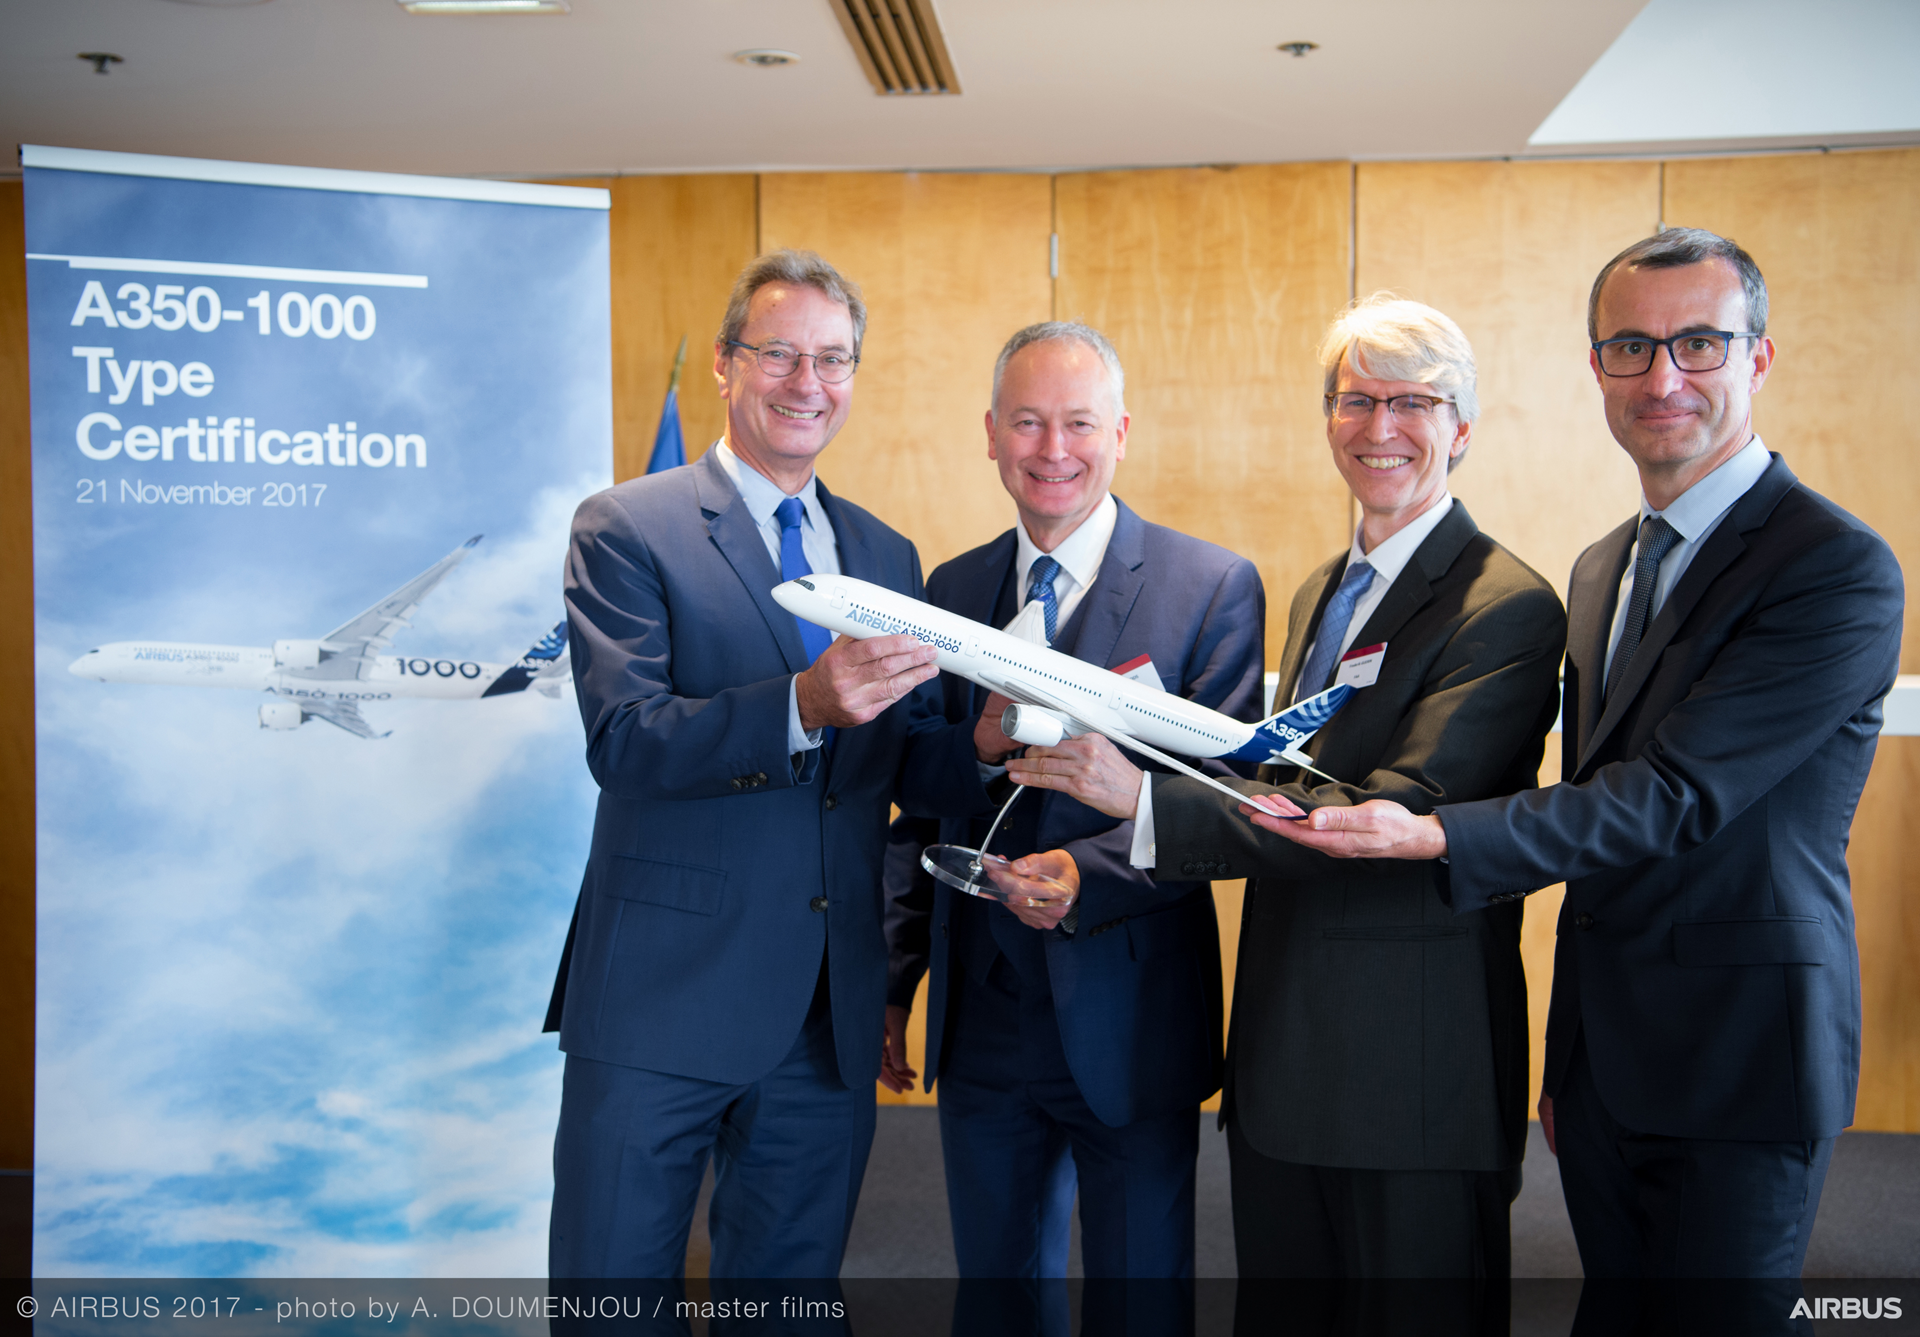 The largest variant of its A350 receiving type certification from the European Aviation Safety Agency (EASA)  The largest variant of its A350 receiving type certification from the European Aviation Safety Agency (EASA) From left to right: Charles Champion, Airbus Commercial Aircraft EVP Engineering, Trévor Woods, EASA's Certification Director,Frederic Guerin, FAA International Field Representative  , Brussels office, Alain De Zotti, Airbus Commercial Aircraft Chief Engineer A350 XWB